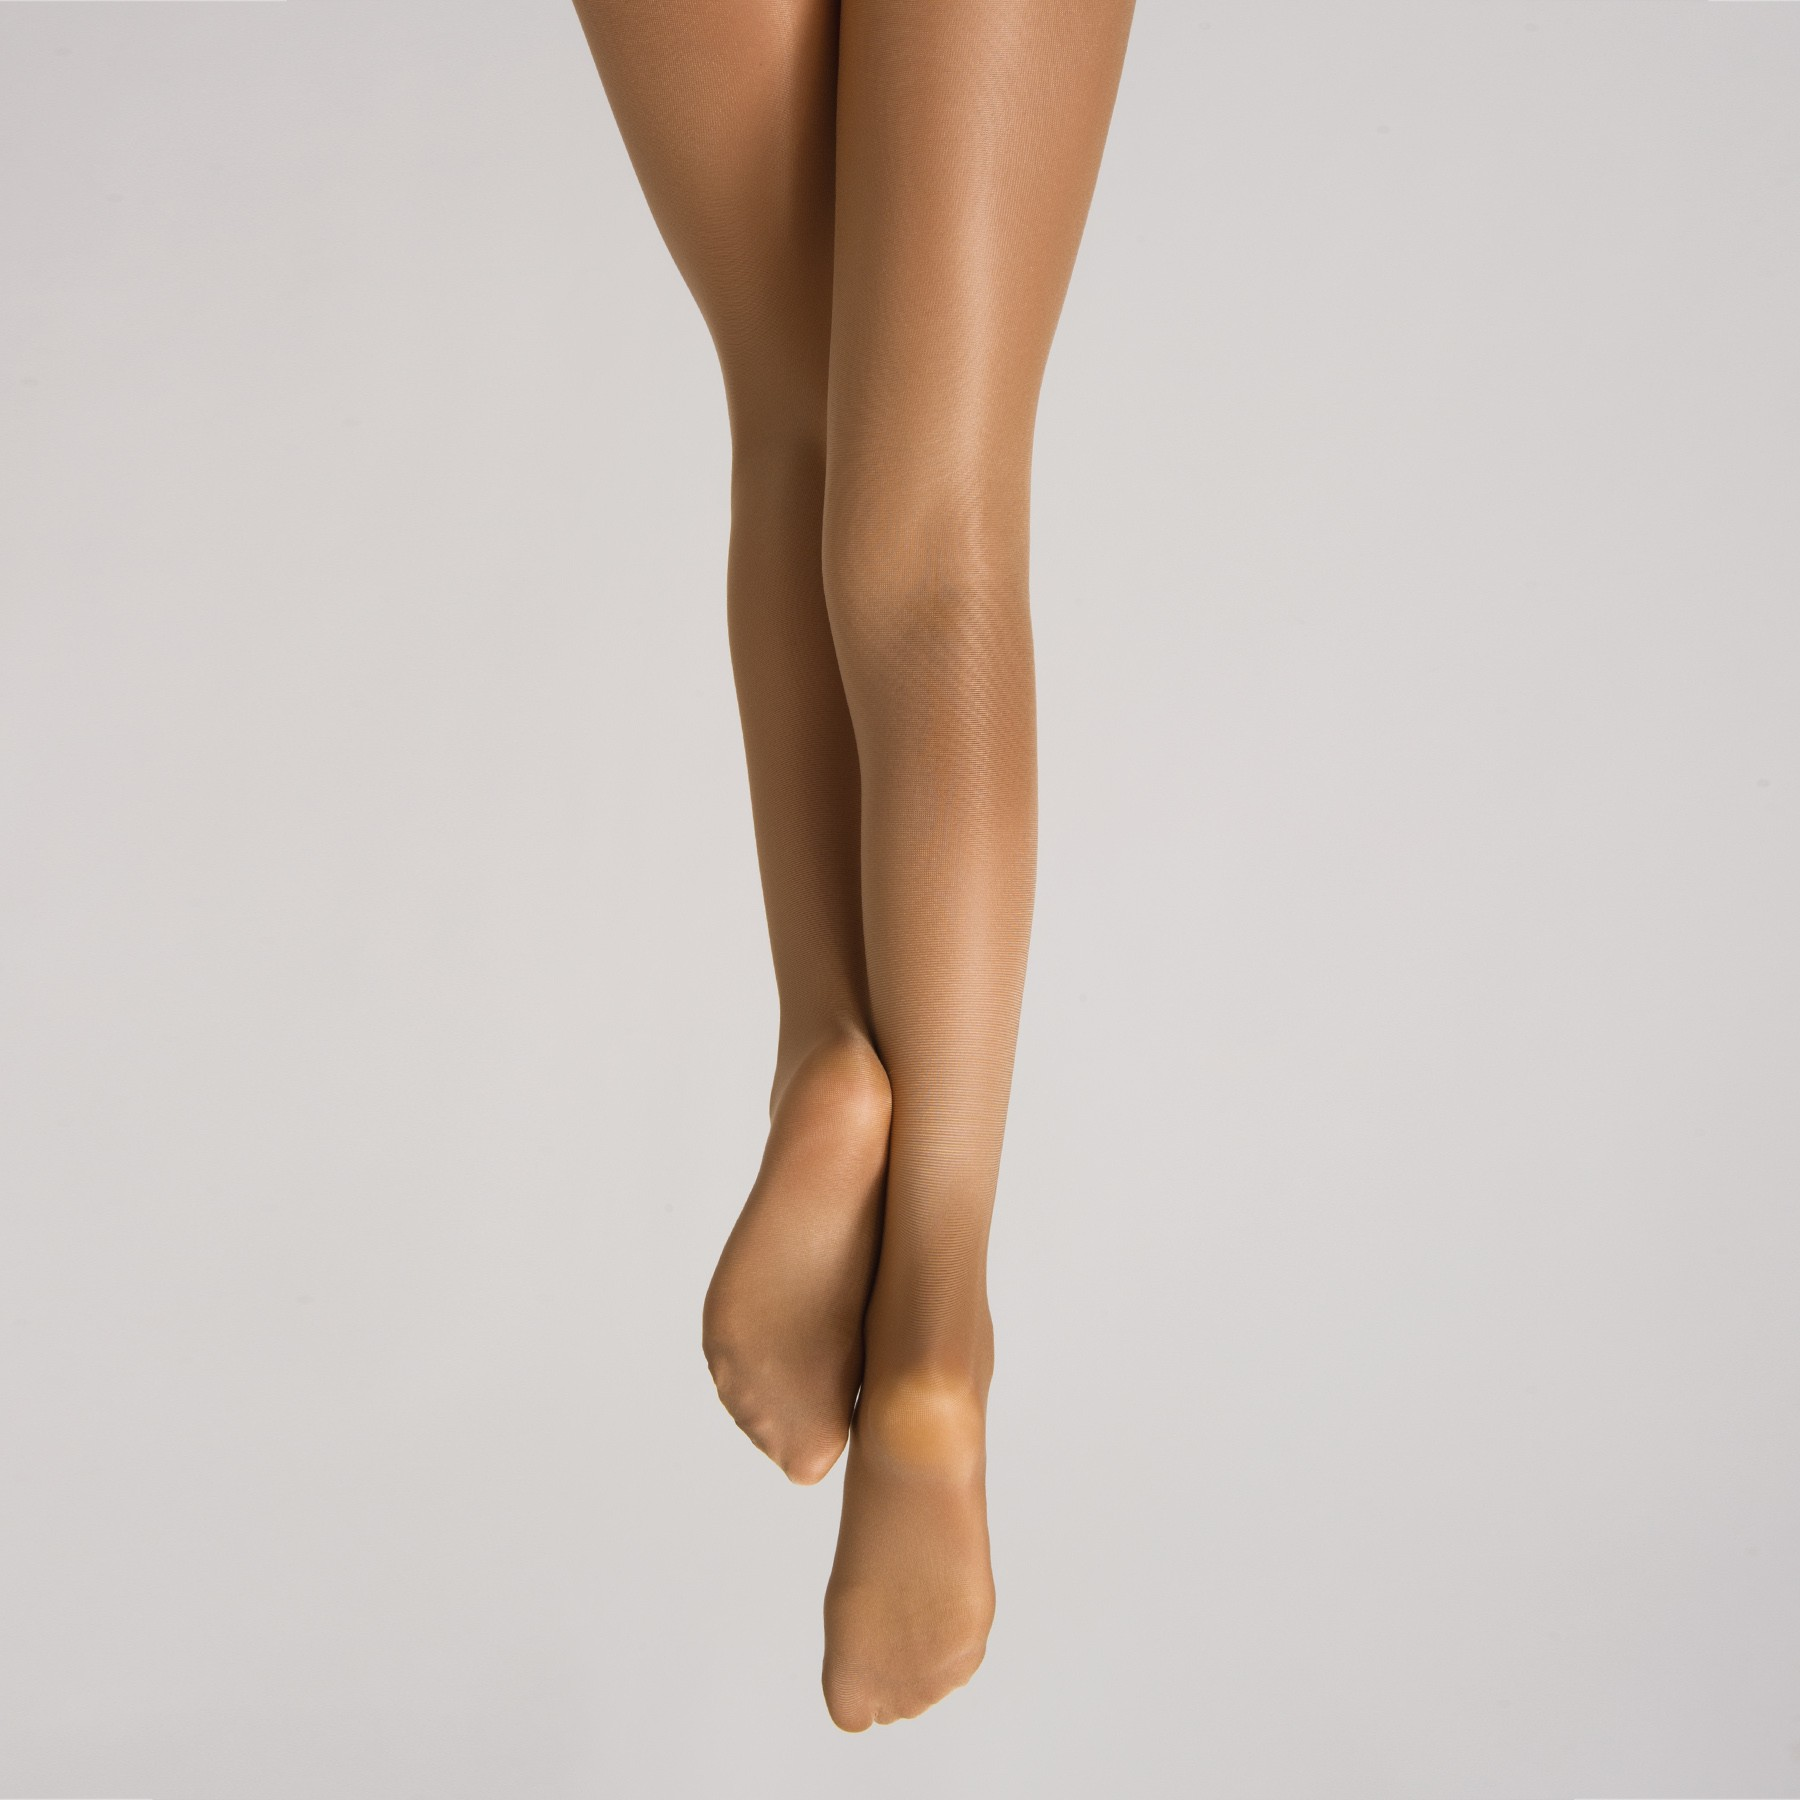 Danskin Girls Footed Ultra Shimmery Tights (Light Toast)